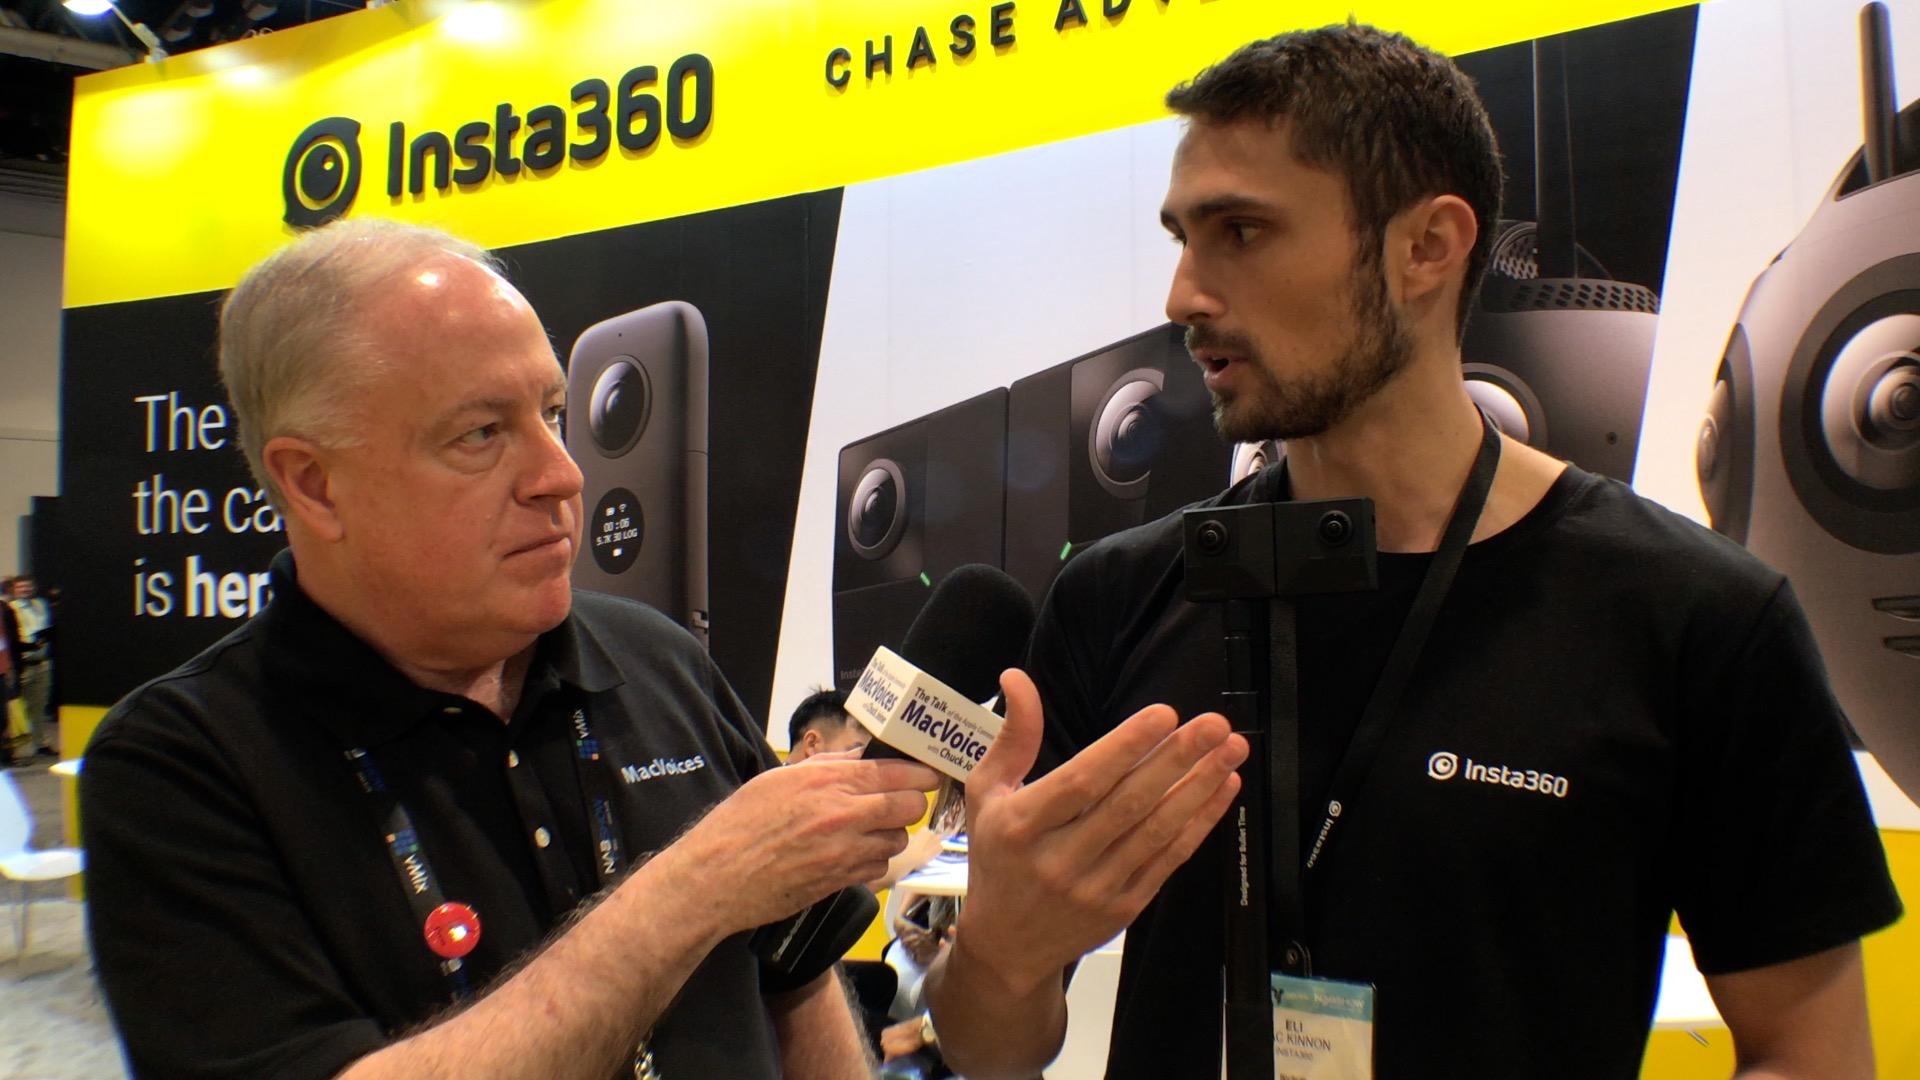 MacVoices #19109: NAB - Insta360 Introduces the Evo, a Combo 3D, 360-Degree Camera - MacVoices